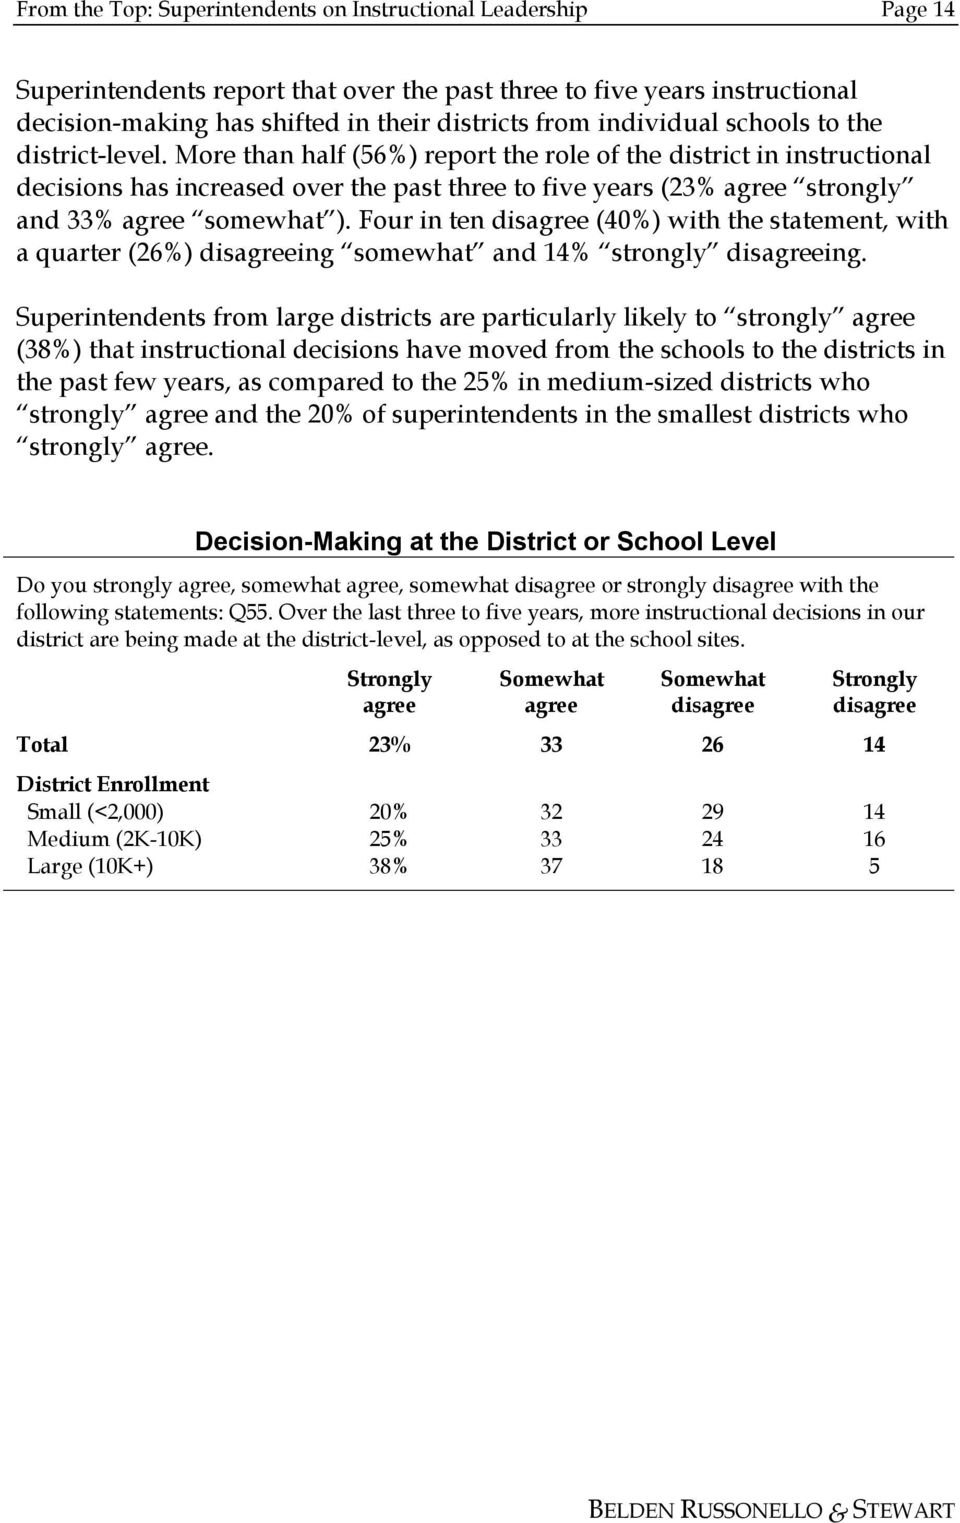 More than half (56%) report the role of the district in instructional decisions has increased over the past three to five years (23% agree strongly and 33% agree somewhat ).